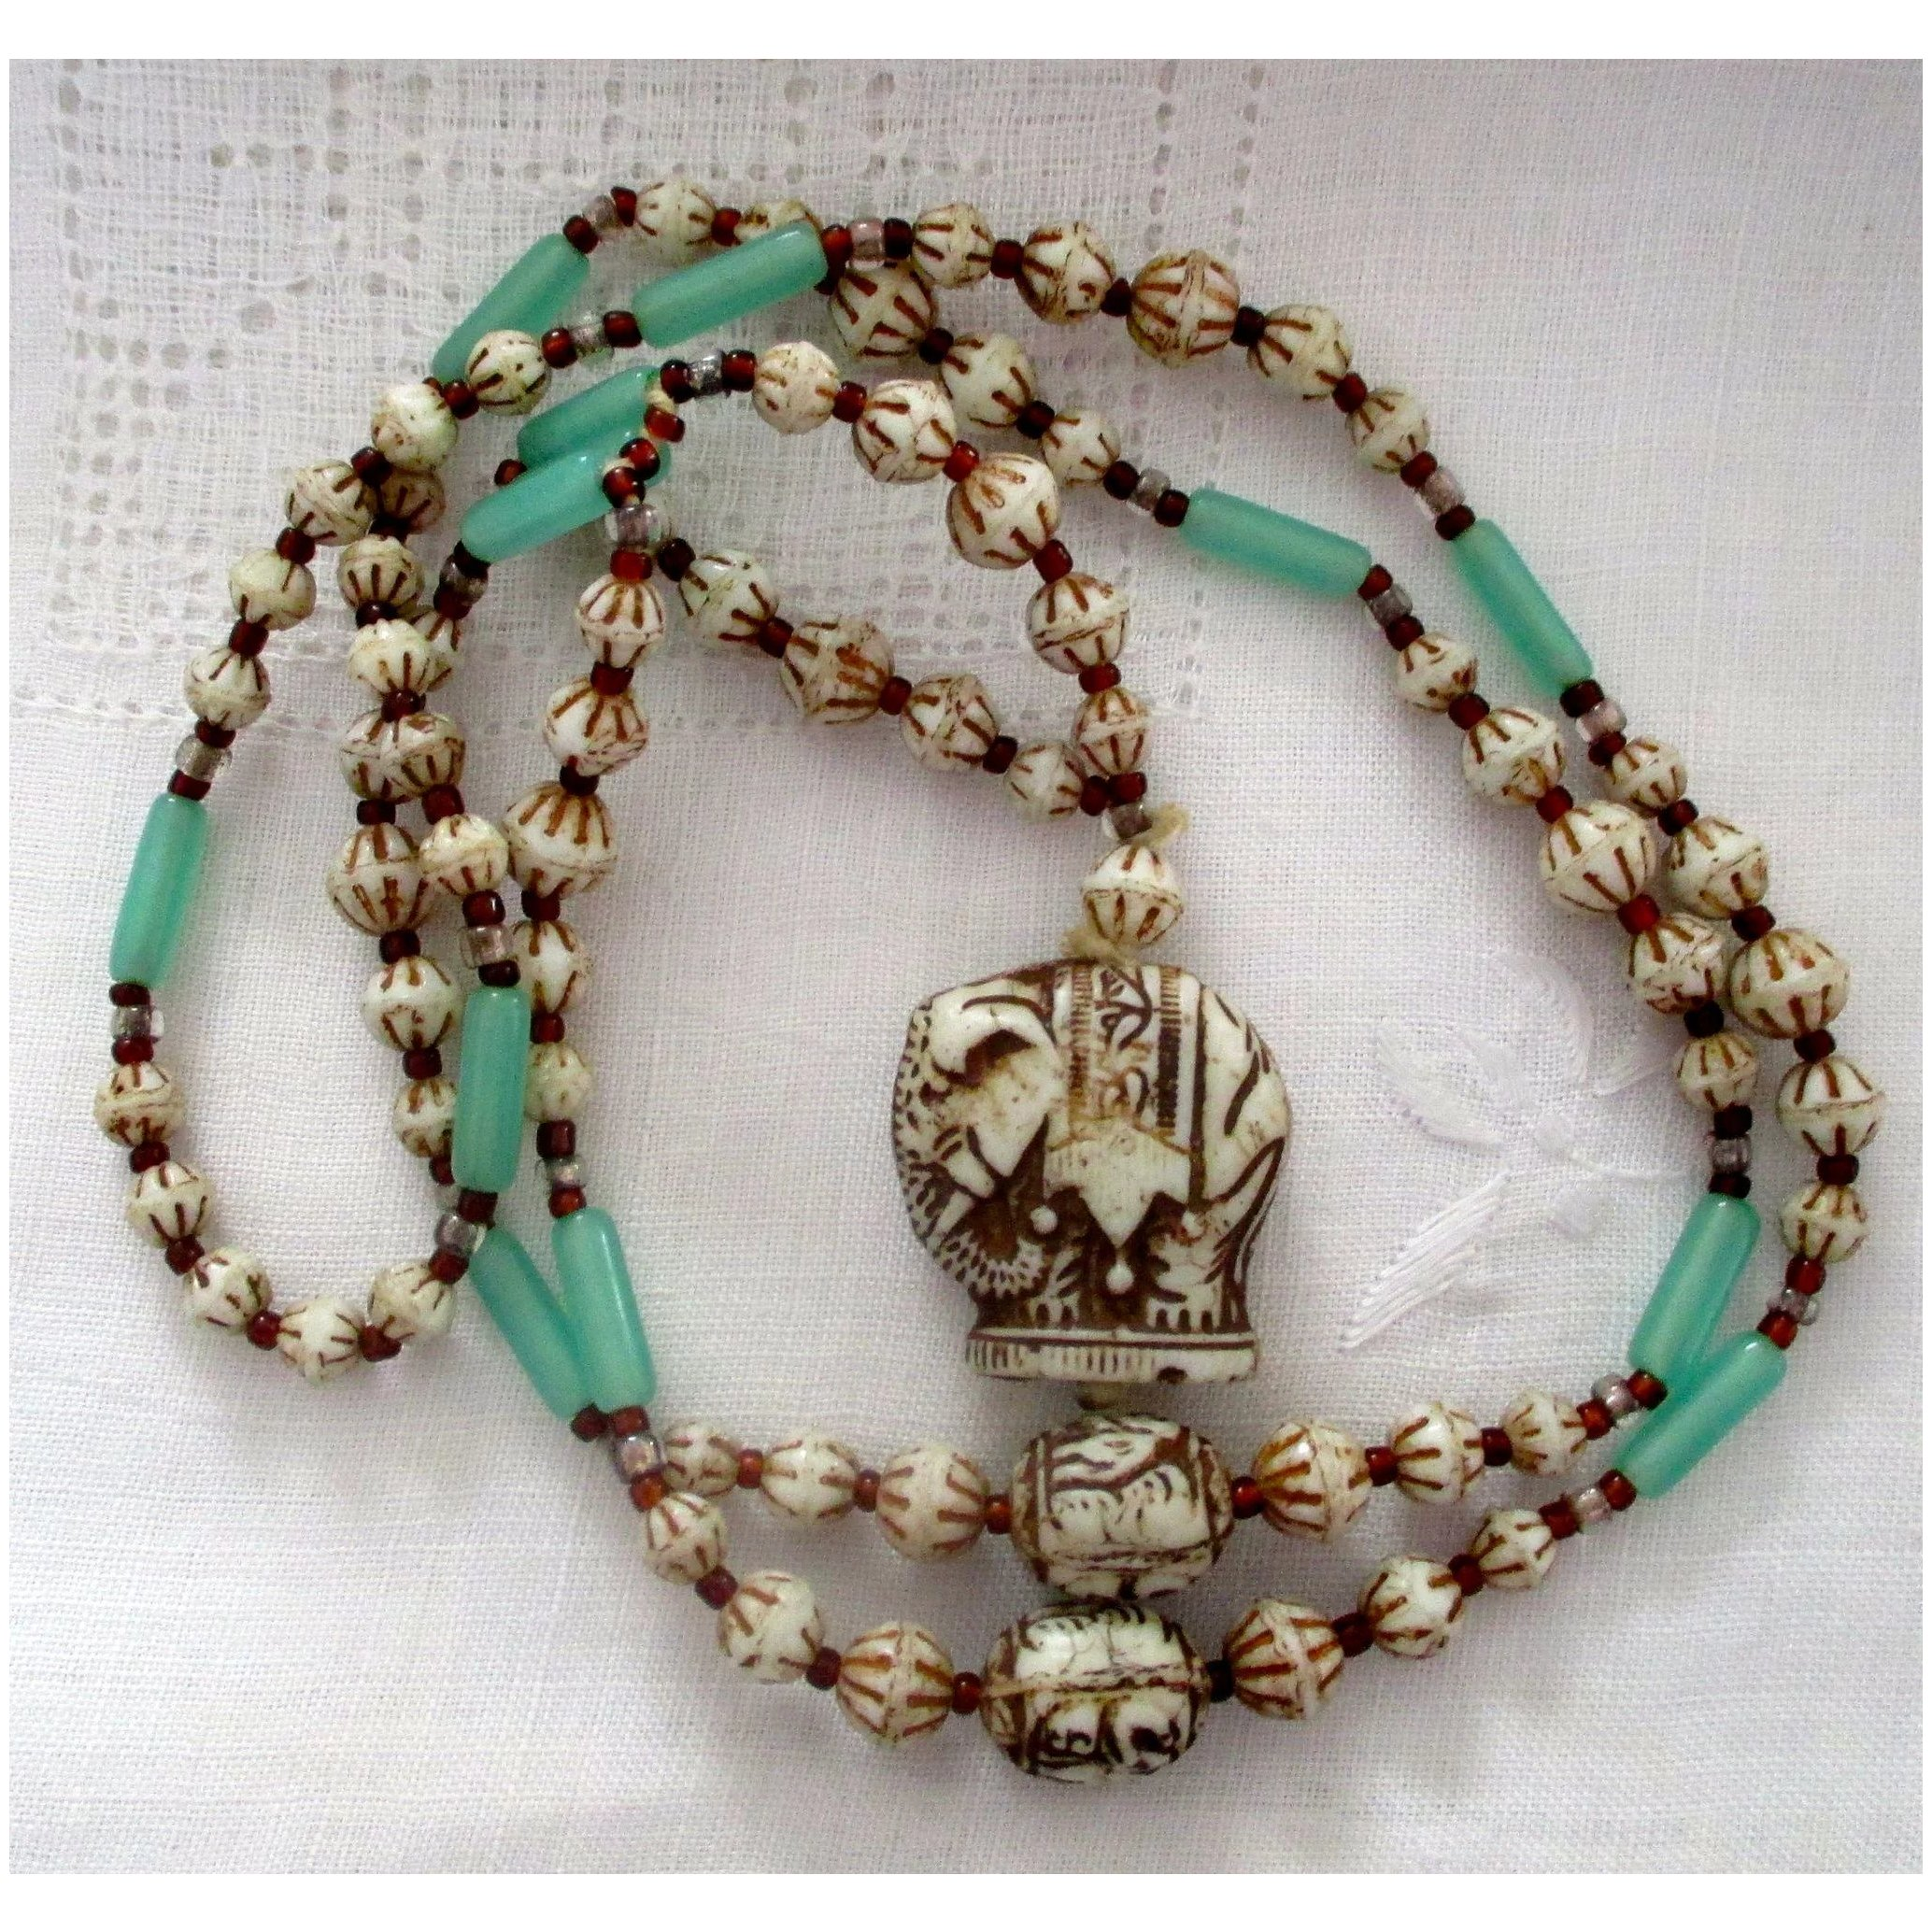 Vintage Carved Bone Bead Necklace Painted Beads Jade Bars Carved Jen S Treasures And Jewels Ruby Lane